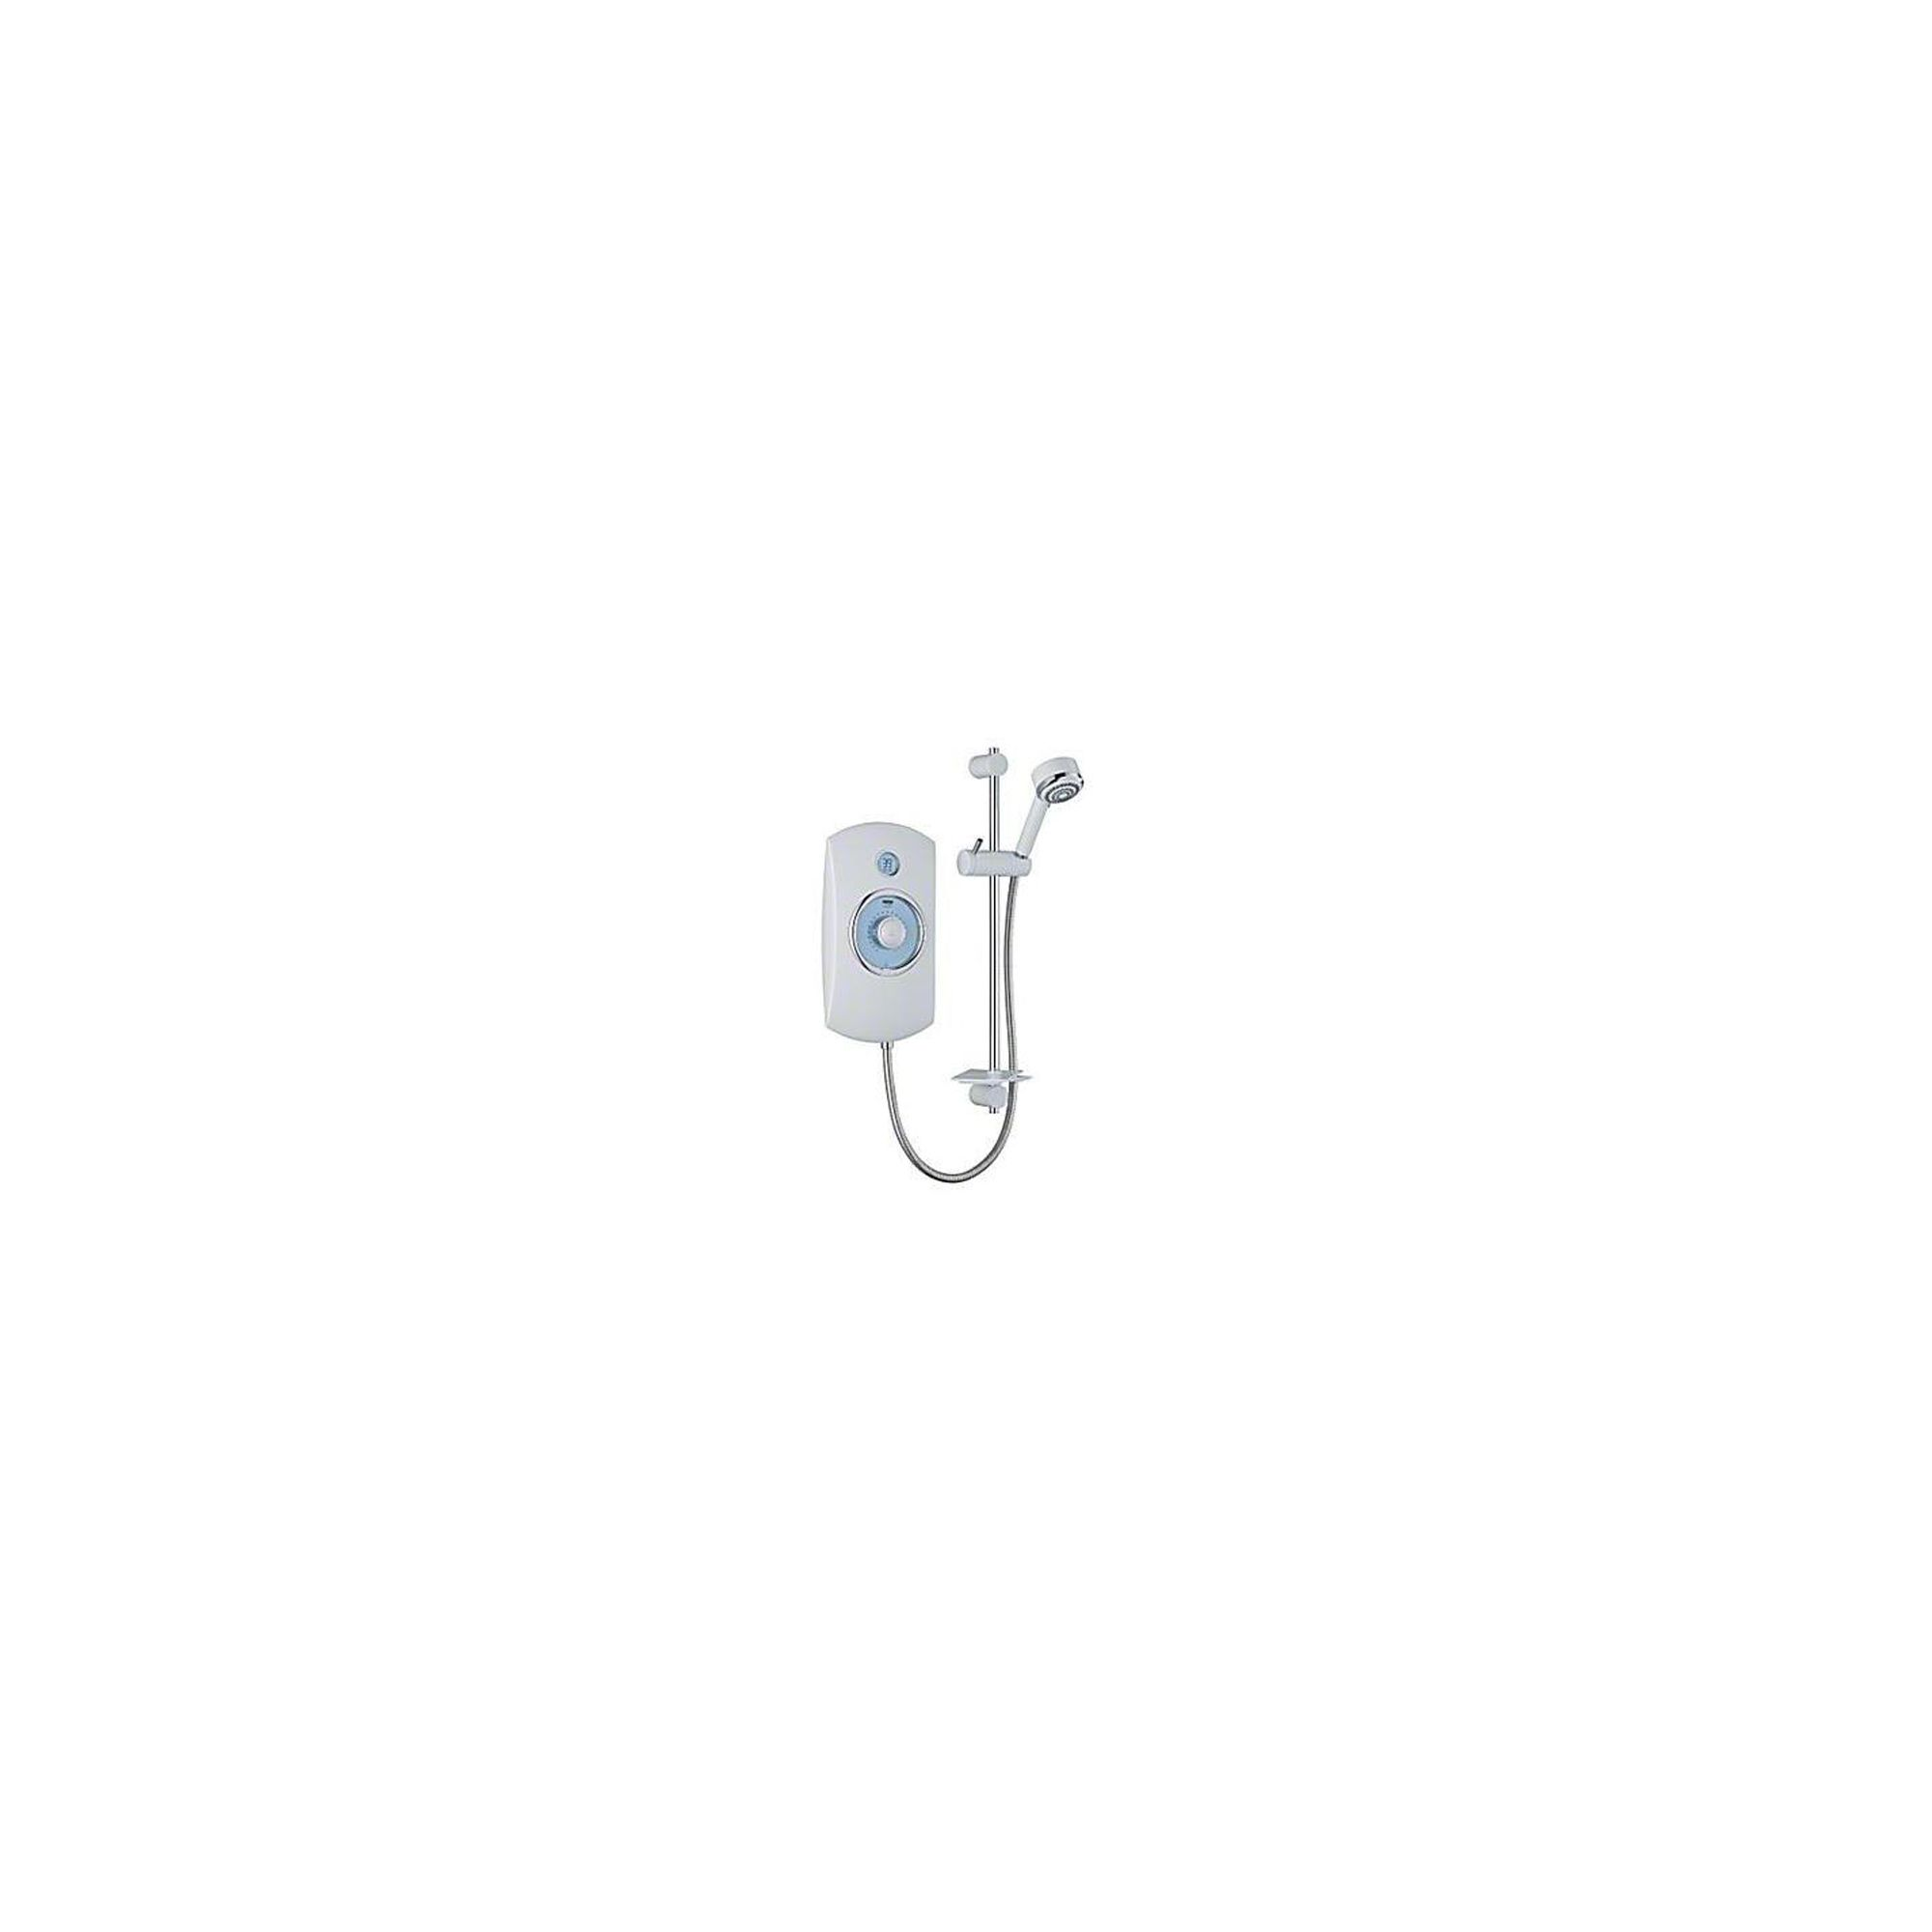 Mira Orbis 9.8 kW Electric Shower with 4 Spray Showerhead, White at Tesco Direct